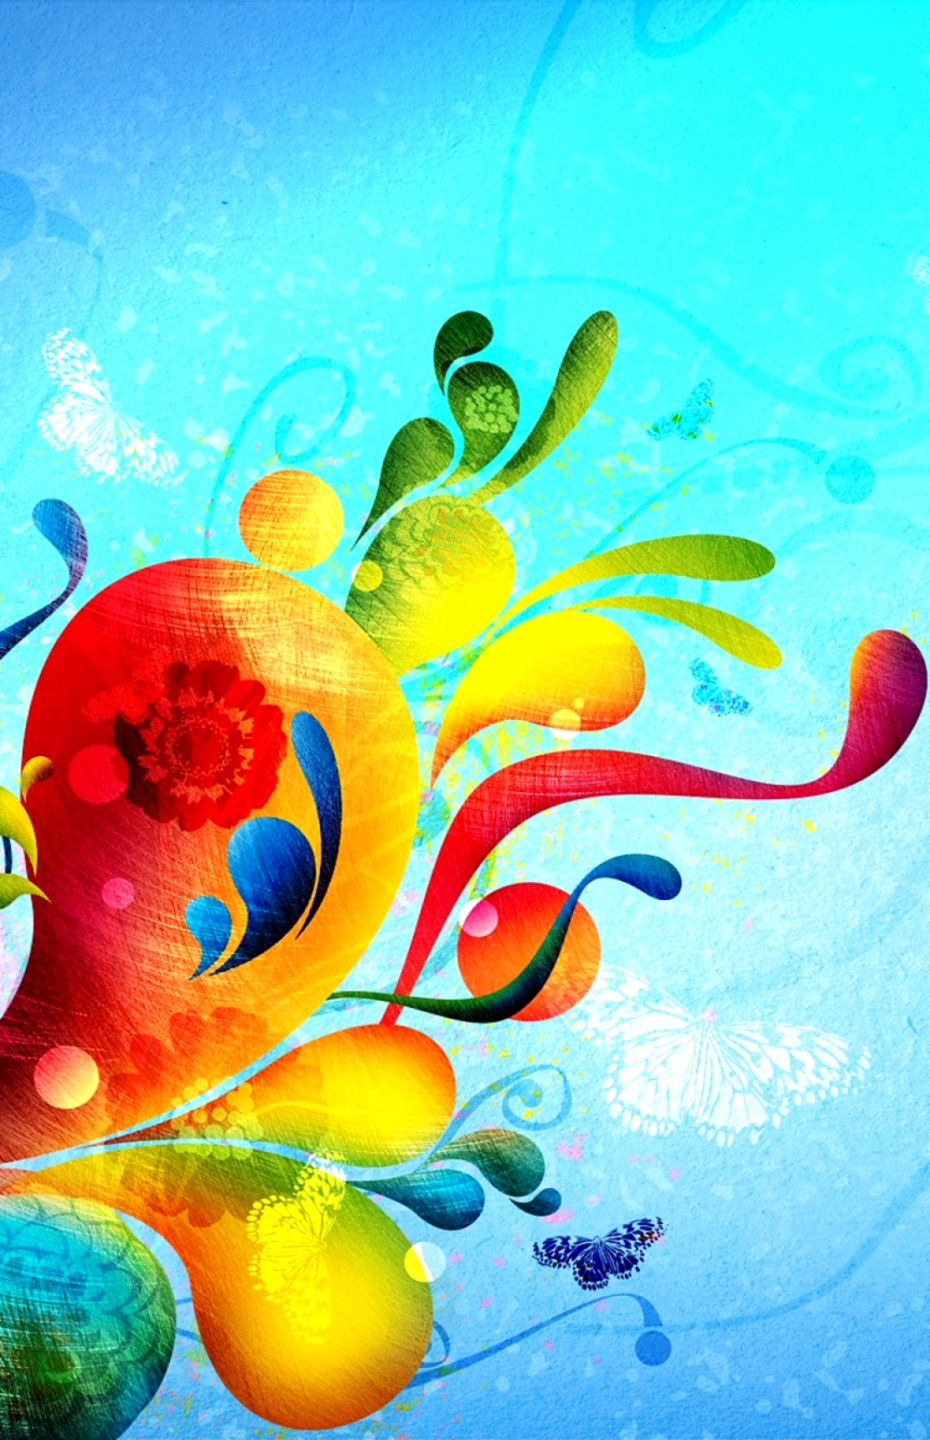 Colorful Abstract Art Hd Wallpapers Wallpapers Screen